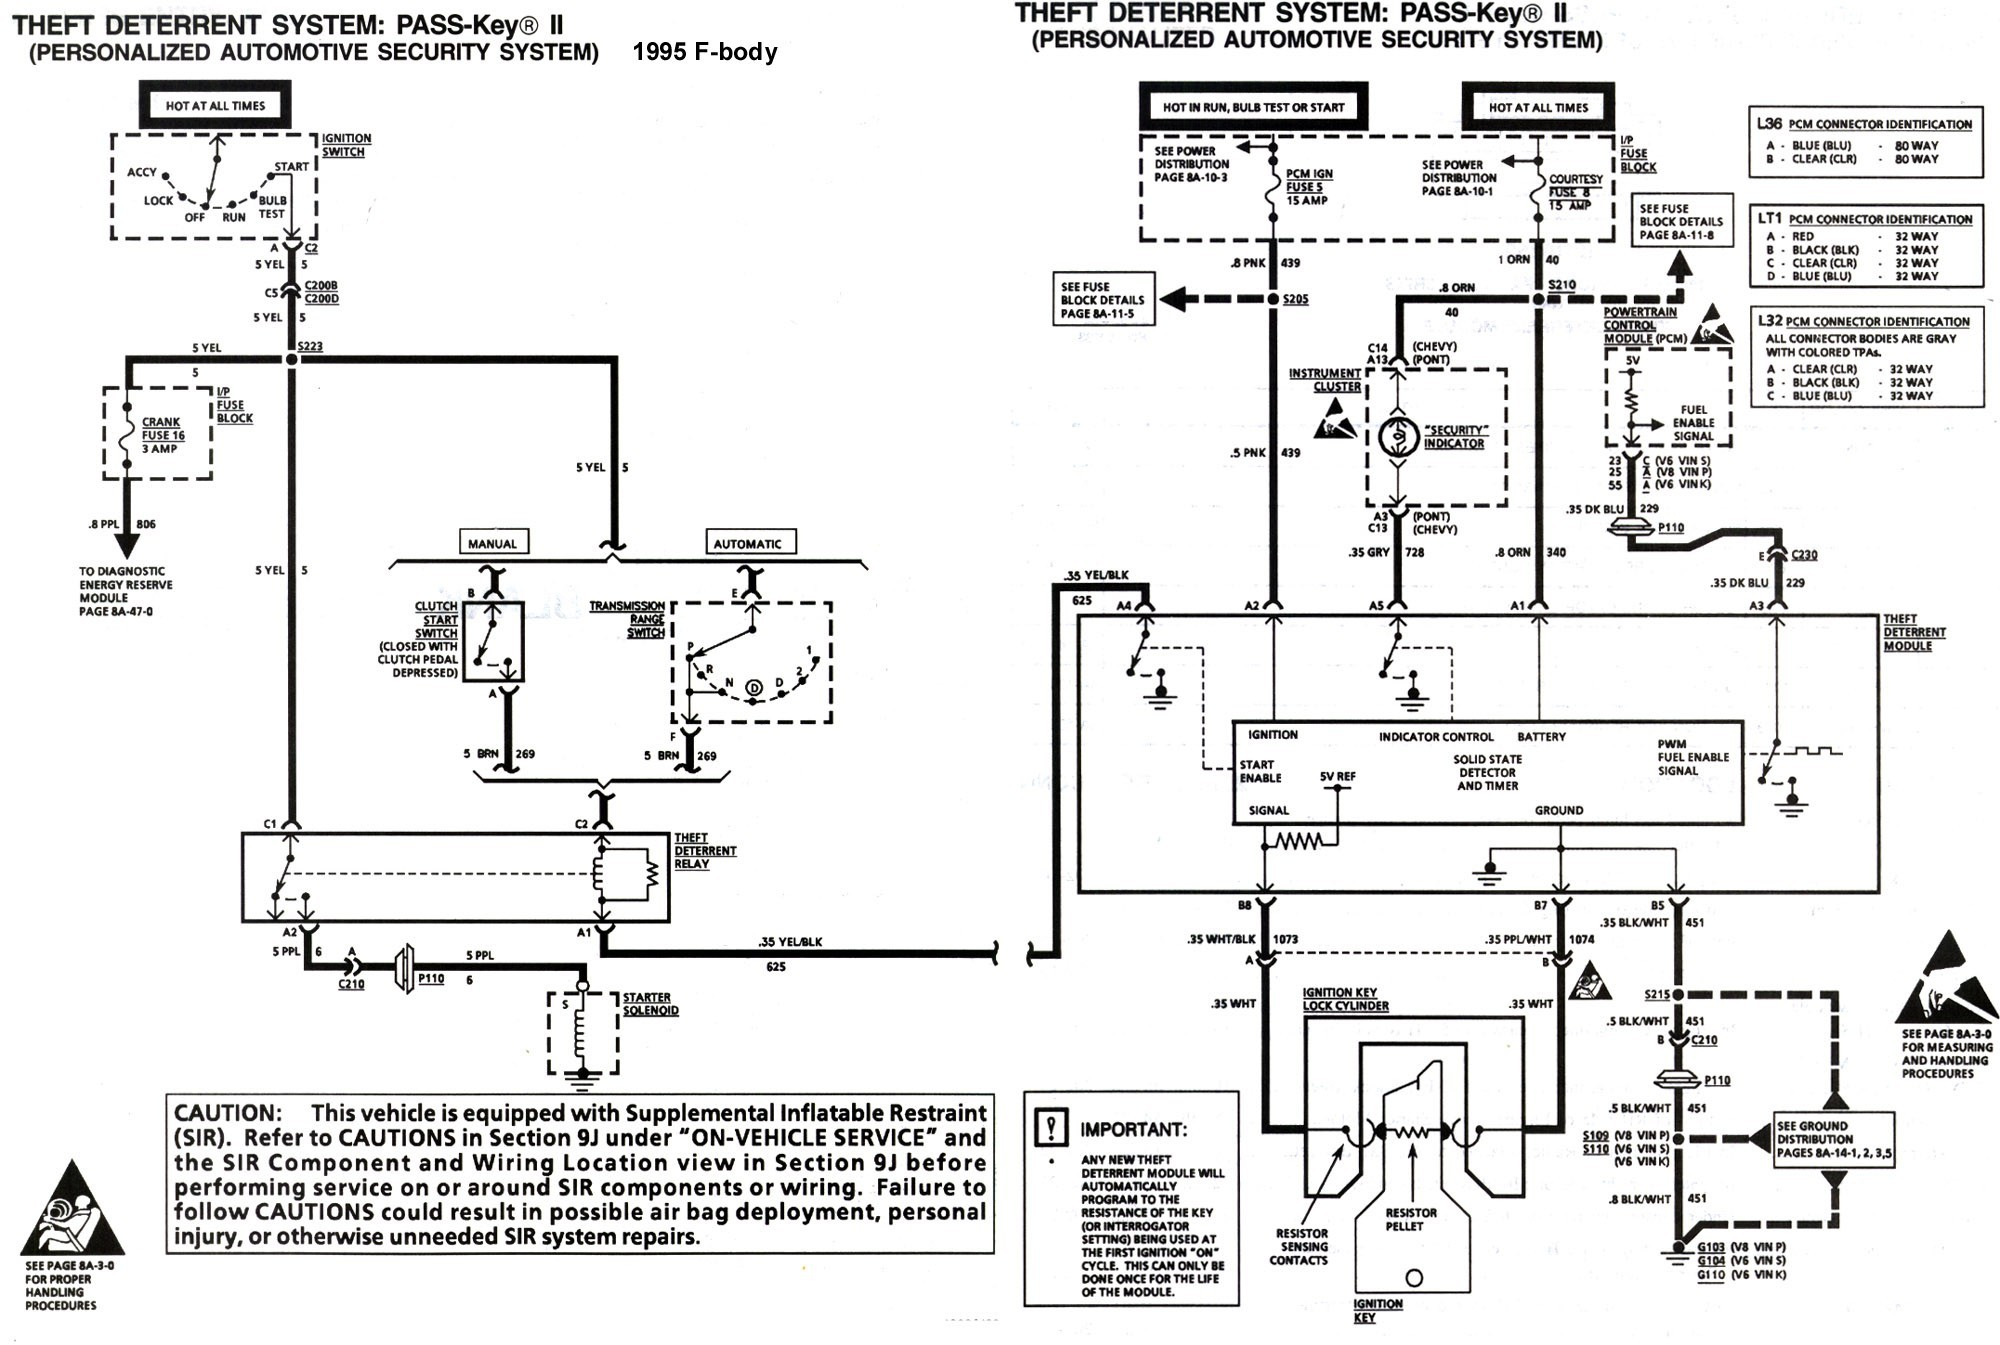 chevy 5 3l vortec engine diagram get free image about wiring diagram rh pepsicolive co 2005 Chevy Impala Engine Diagram 2002 Chevy Venture Engine Diagram